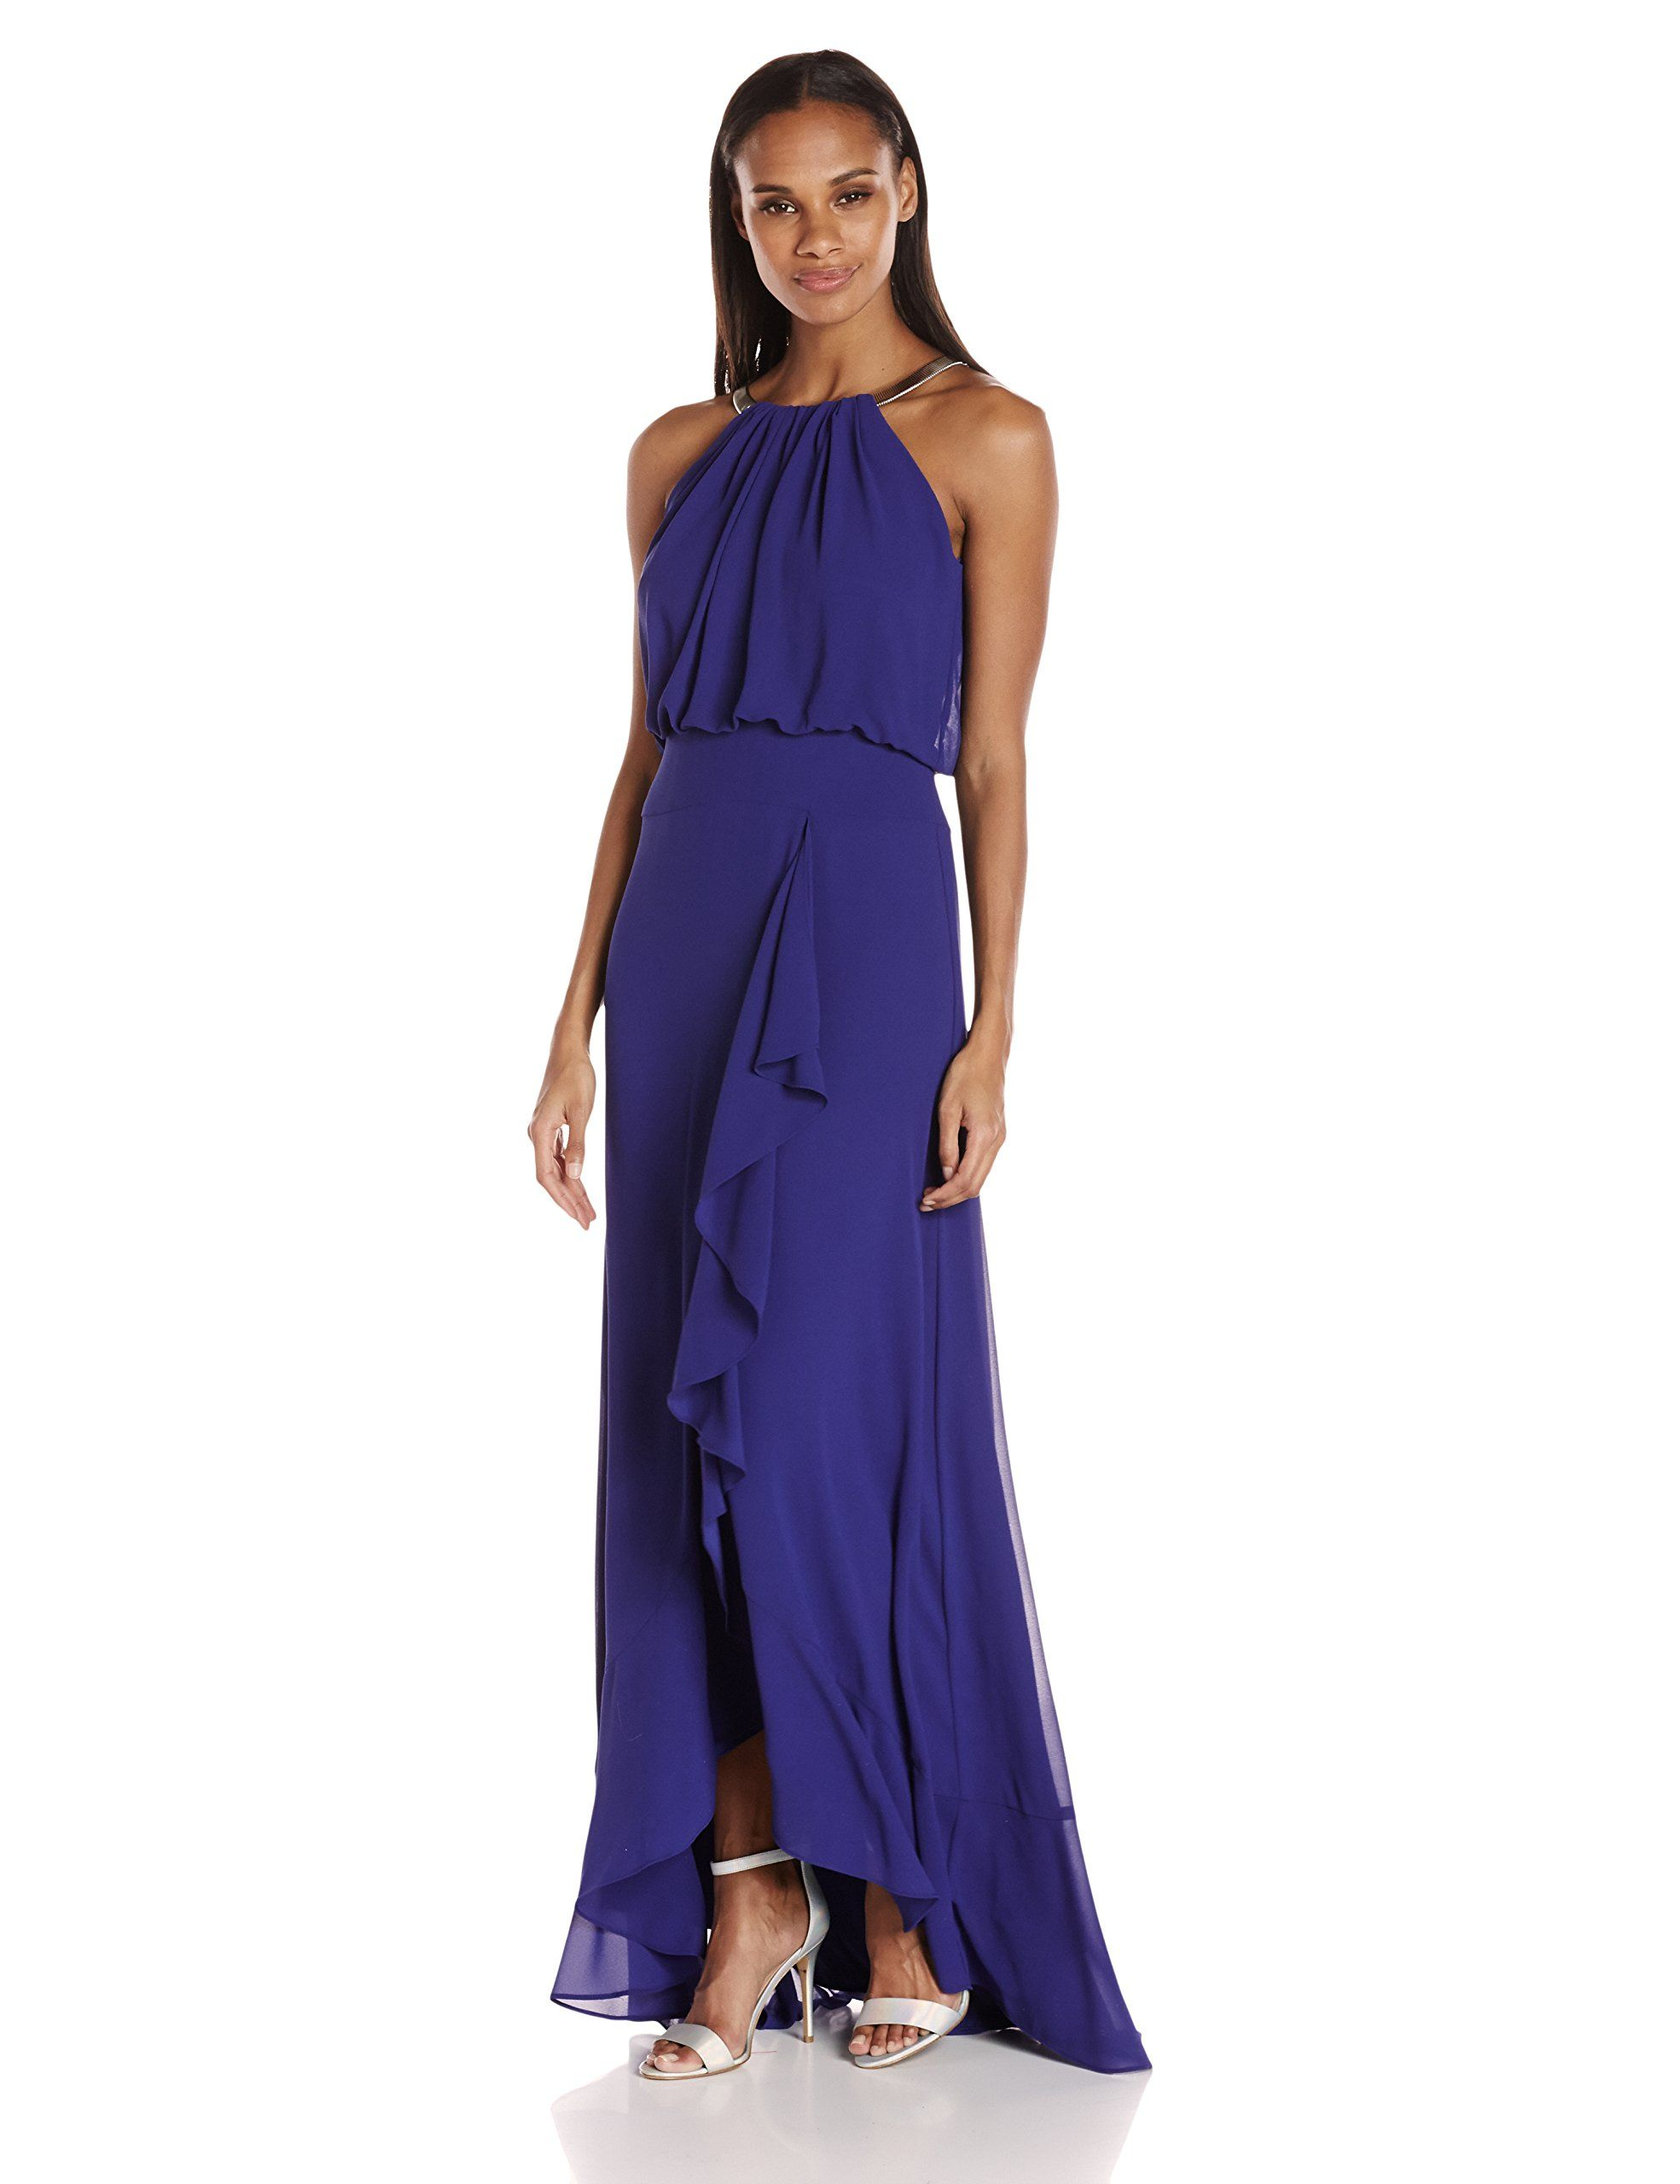 Eliza J Women\'s Halter Gown with Metal Necklace, Royal, 6 | Apparel ...